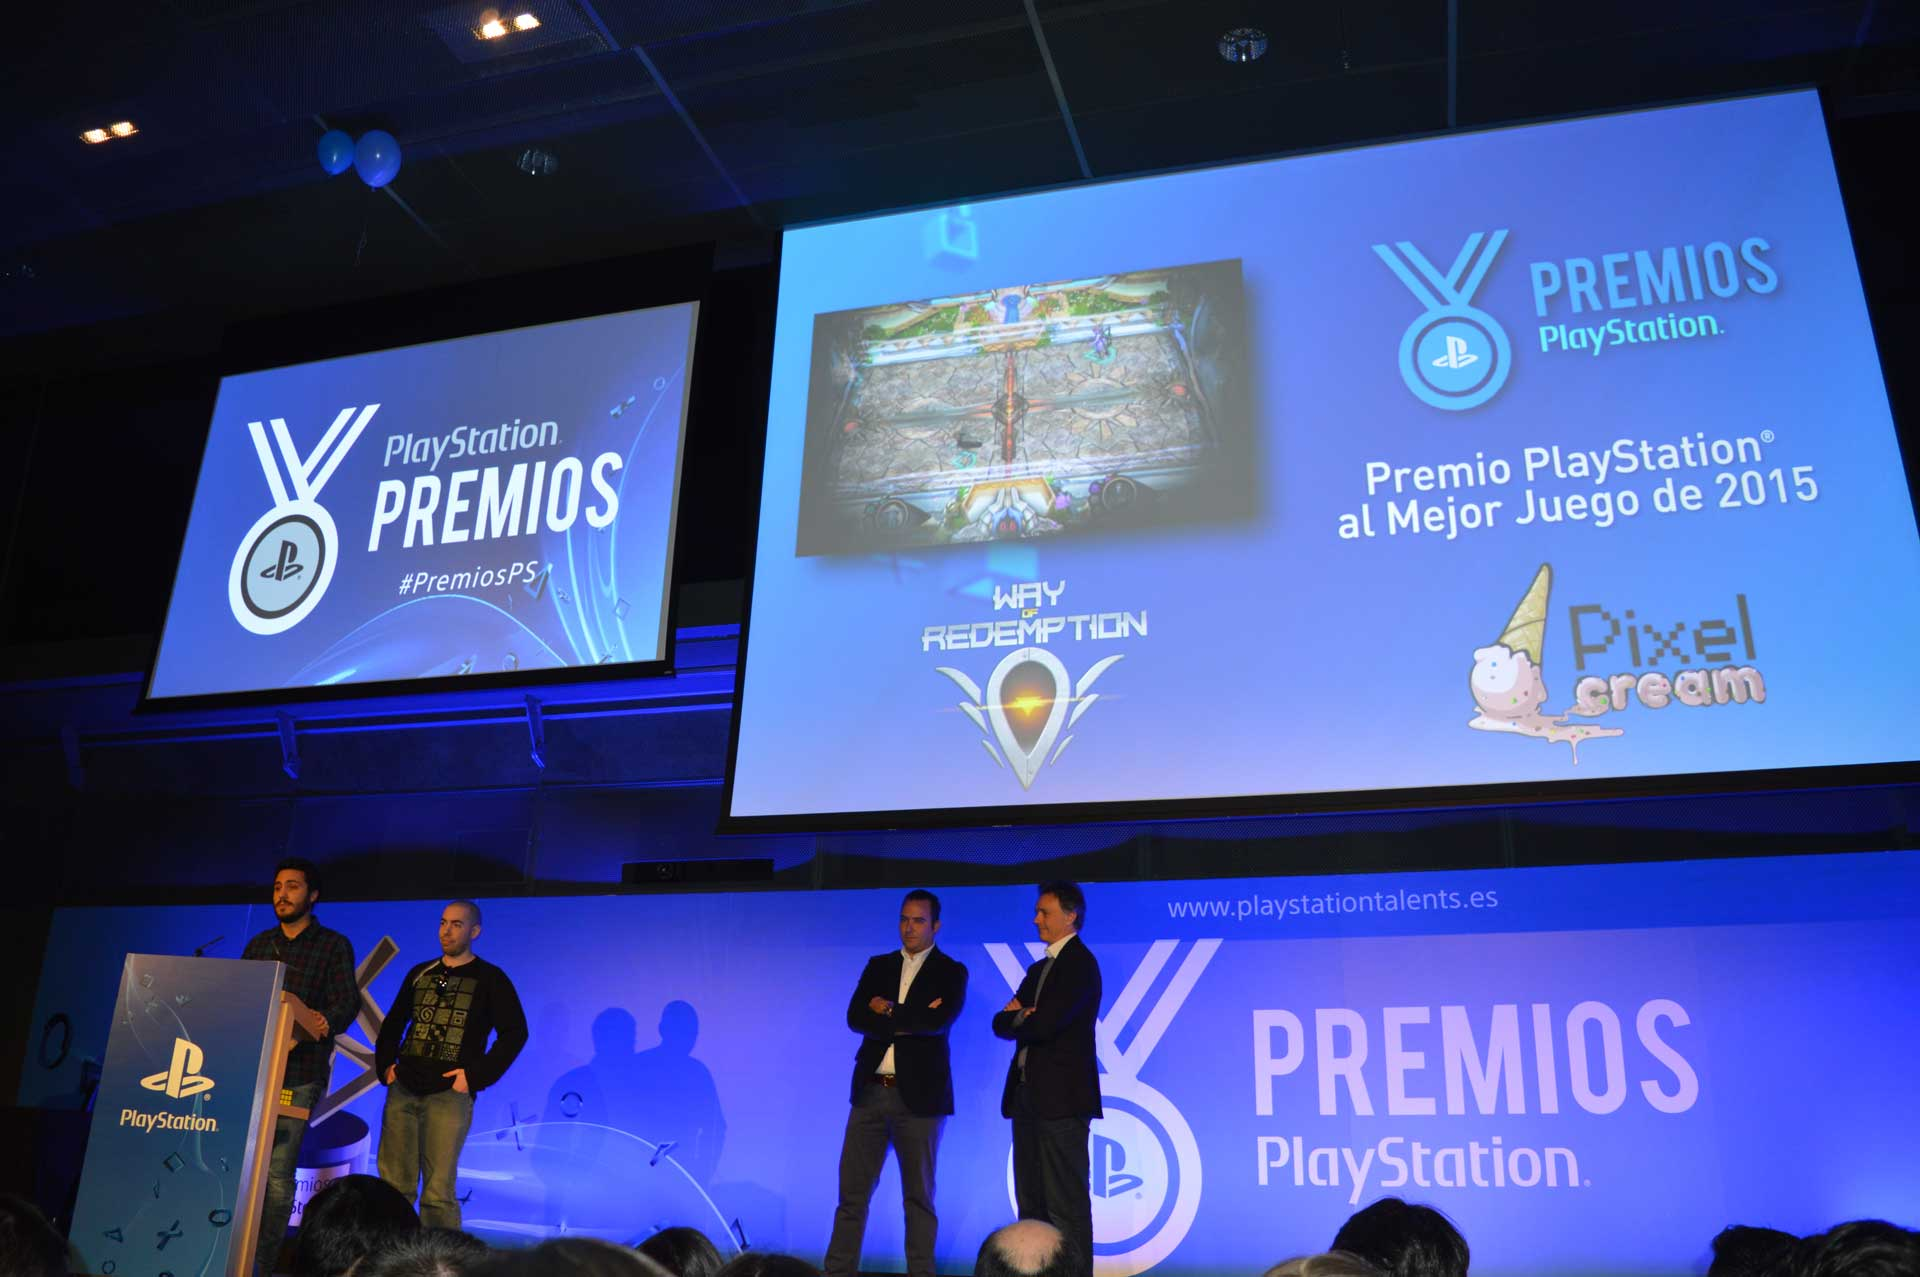 Way of Redemption Premios PS 1